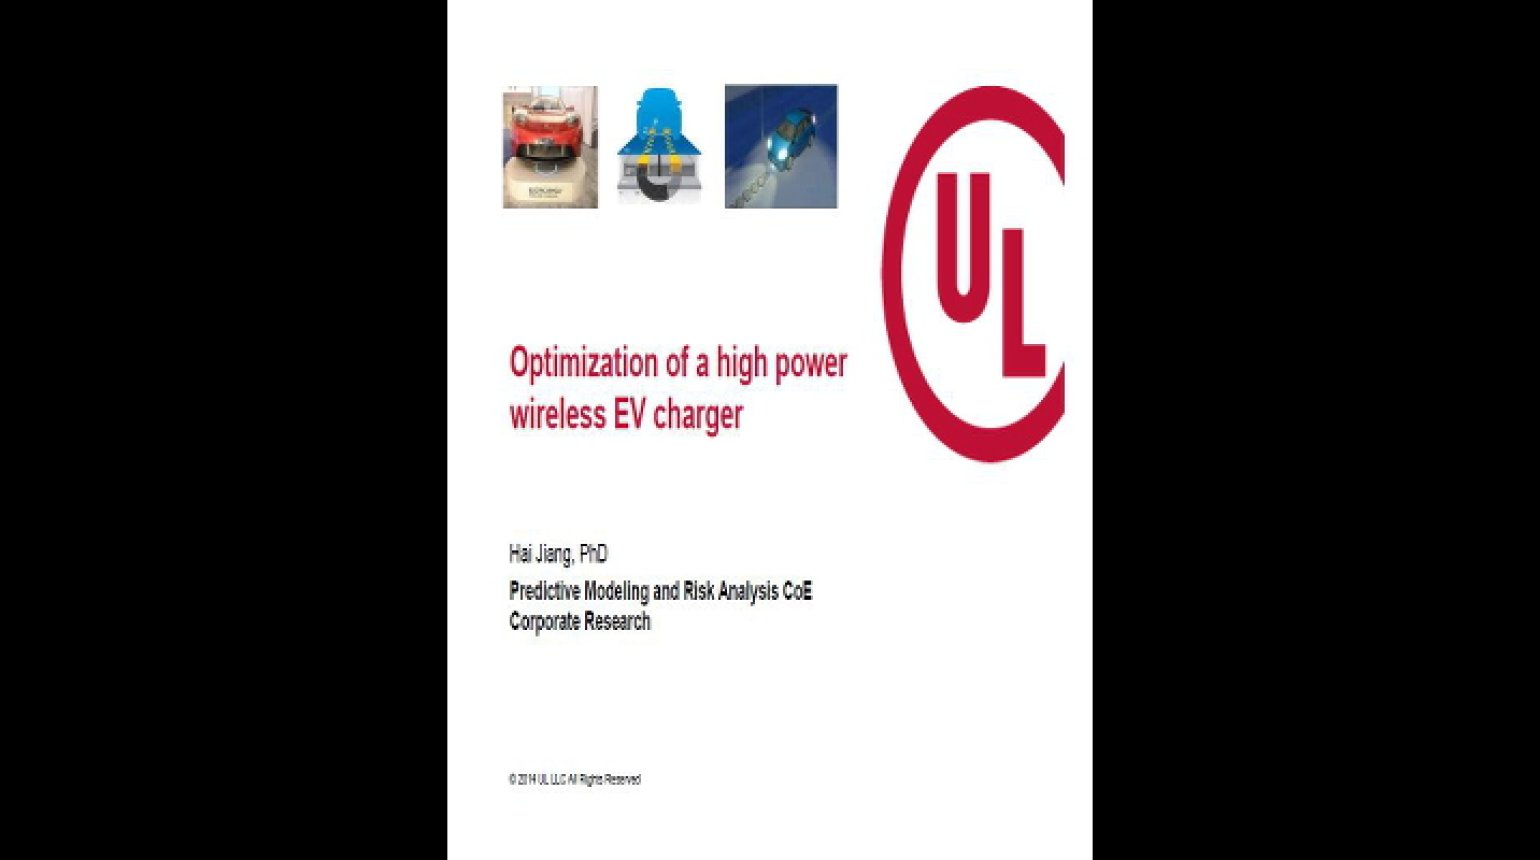 Video - Optimization of a High Power Wireless EV Charger